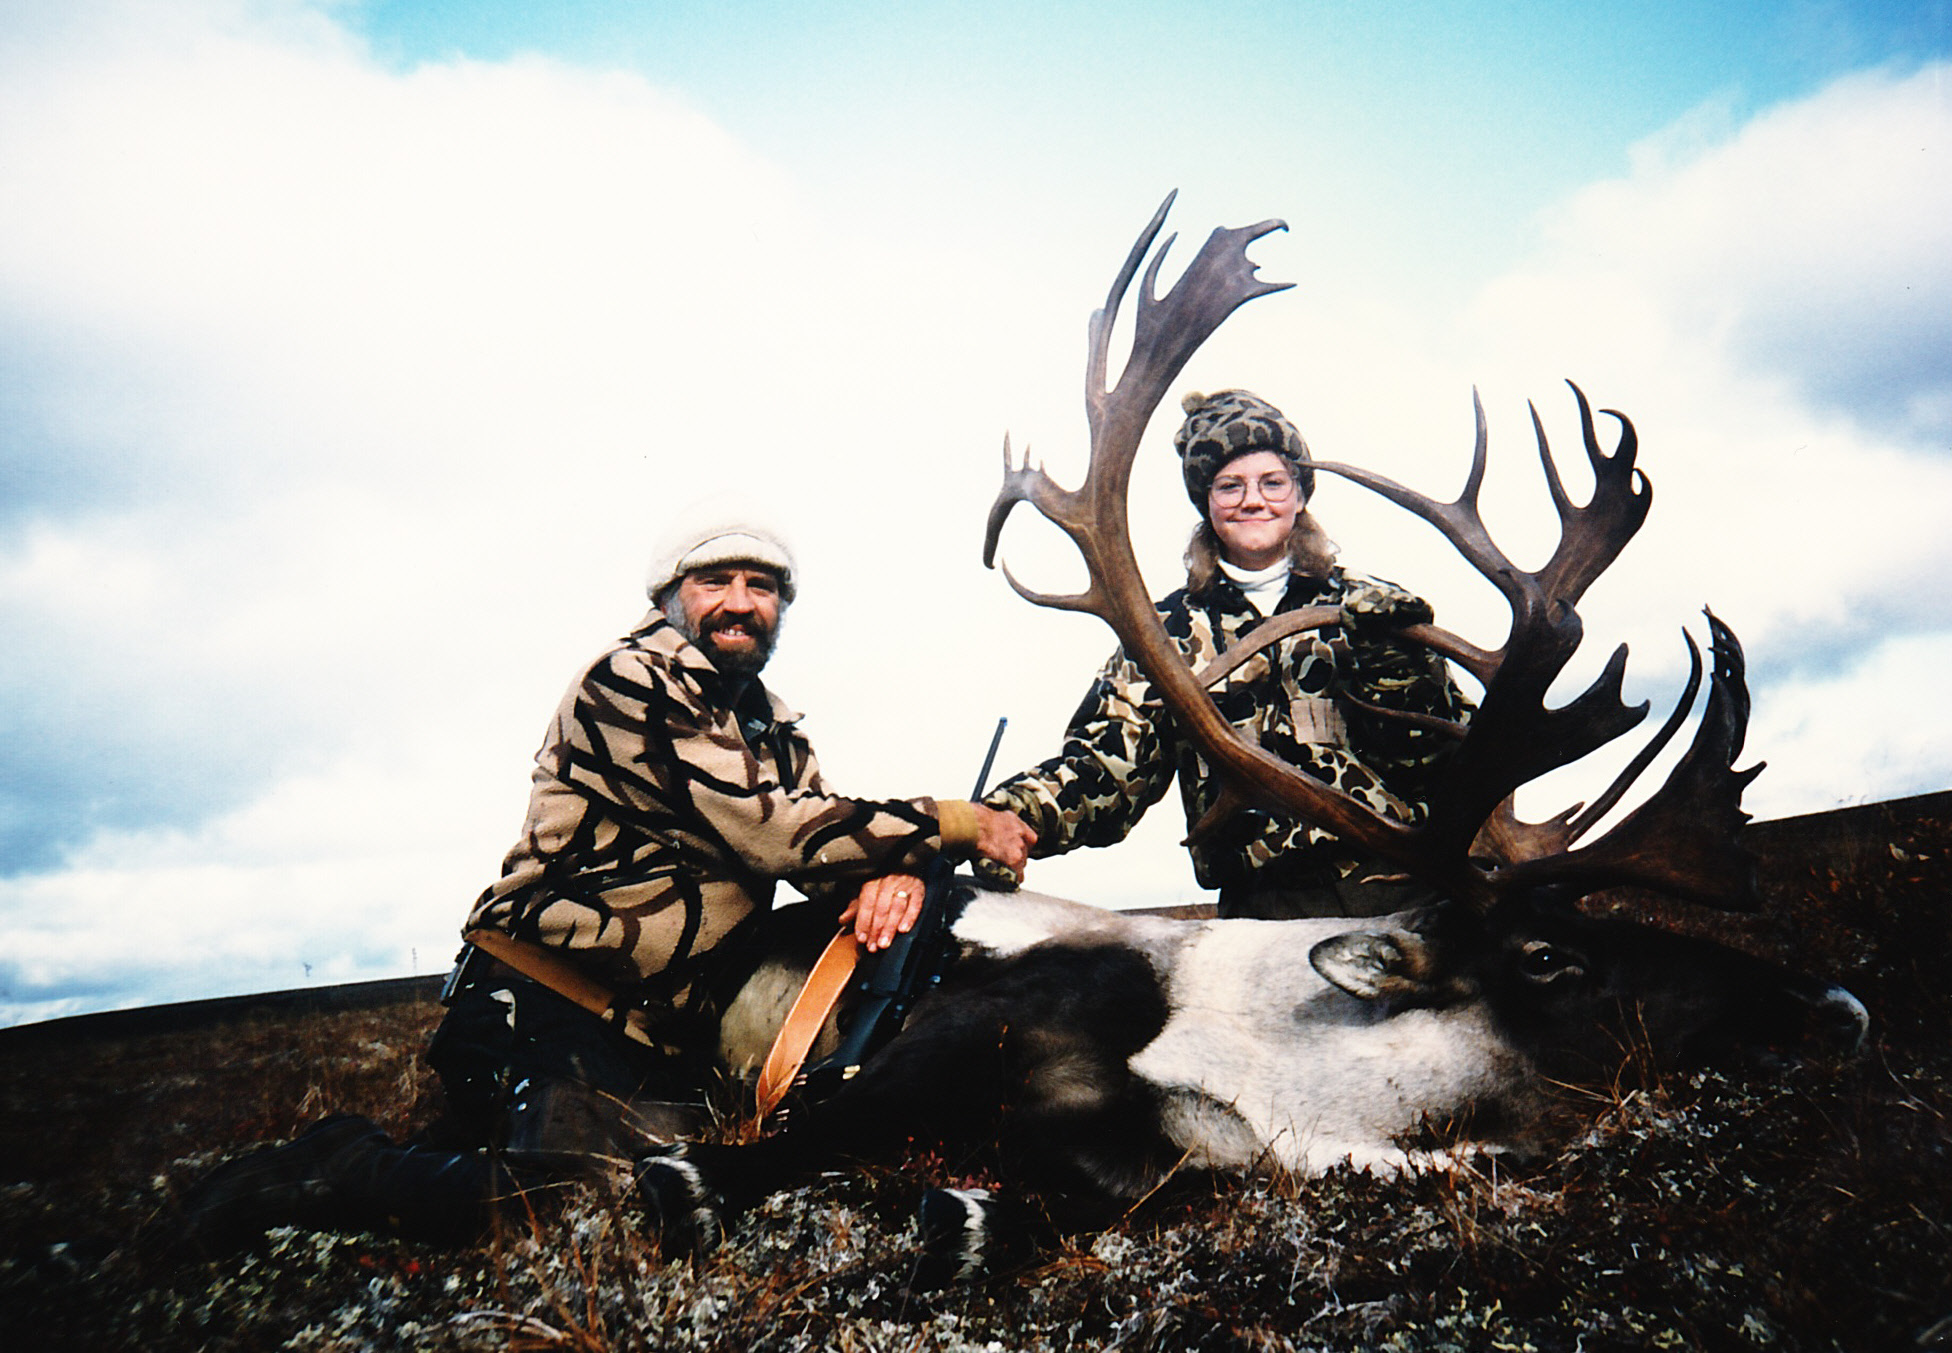 Margaret and me with her beautiful 385 B&C caribou. She made a great shot!